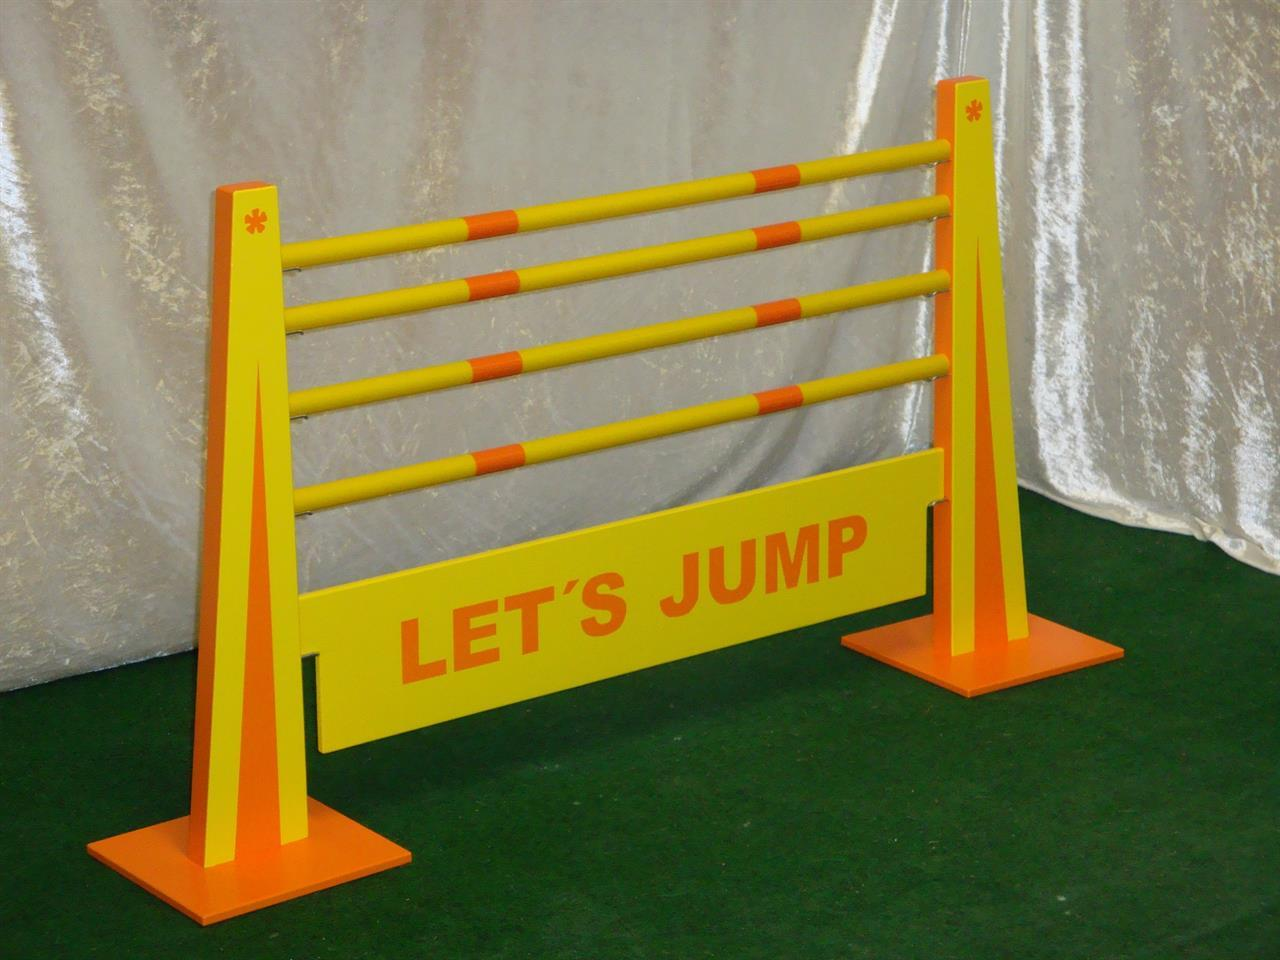 Lets Jump